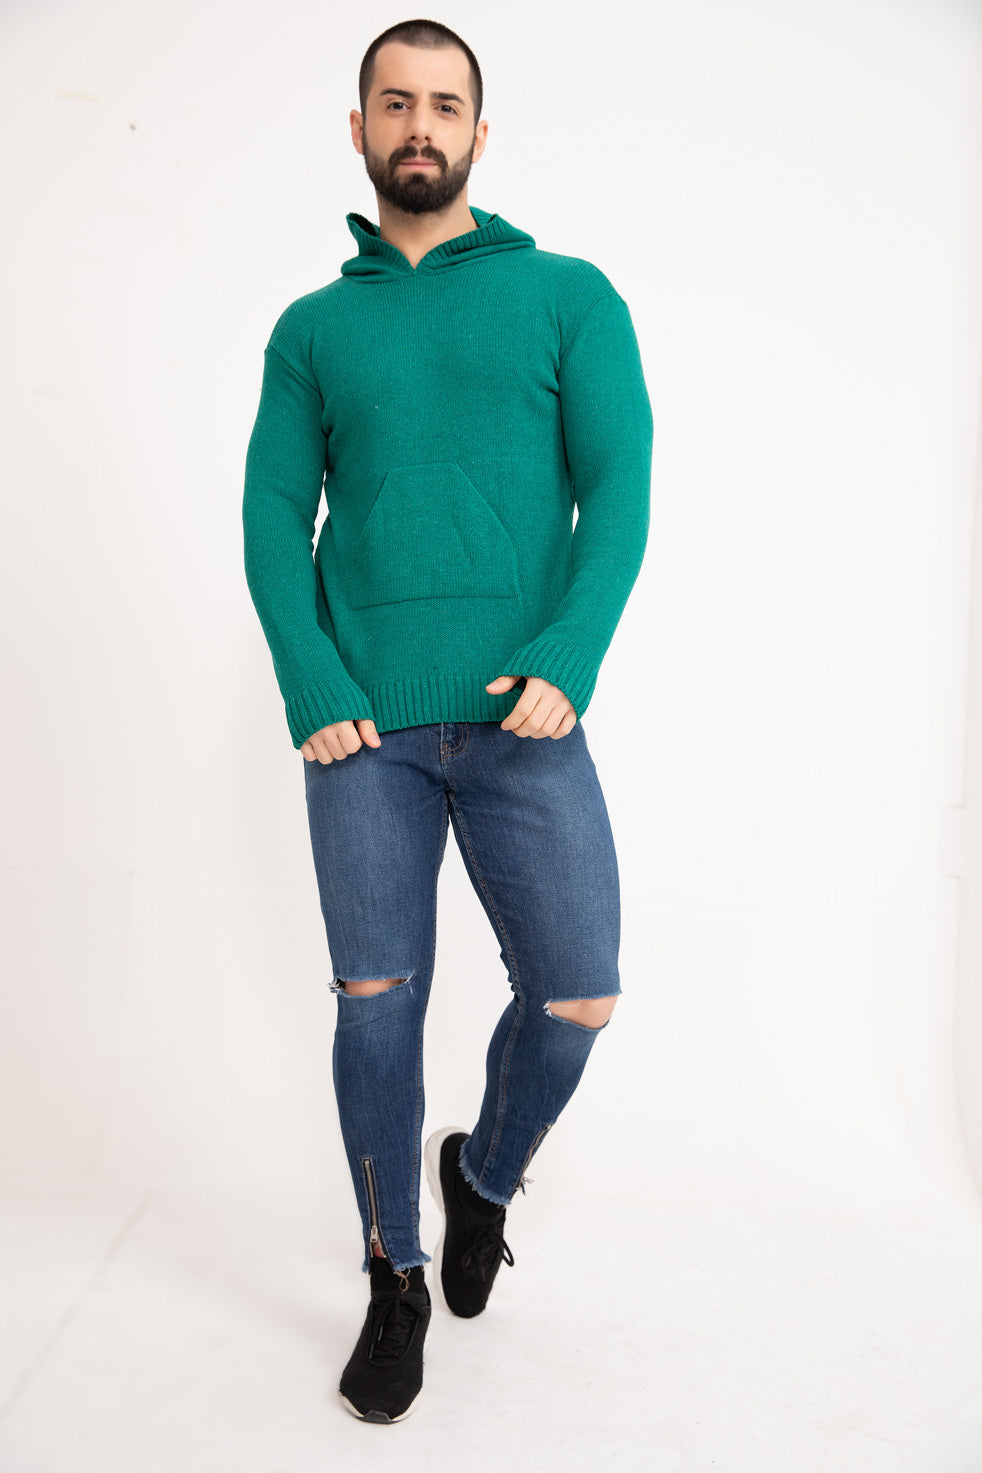 Green Hooded Men's Knitwear Sweater